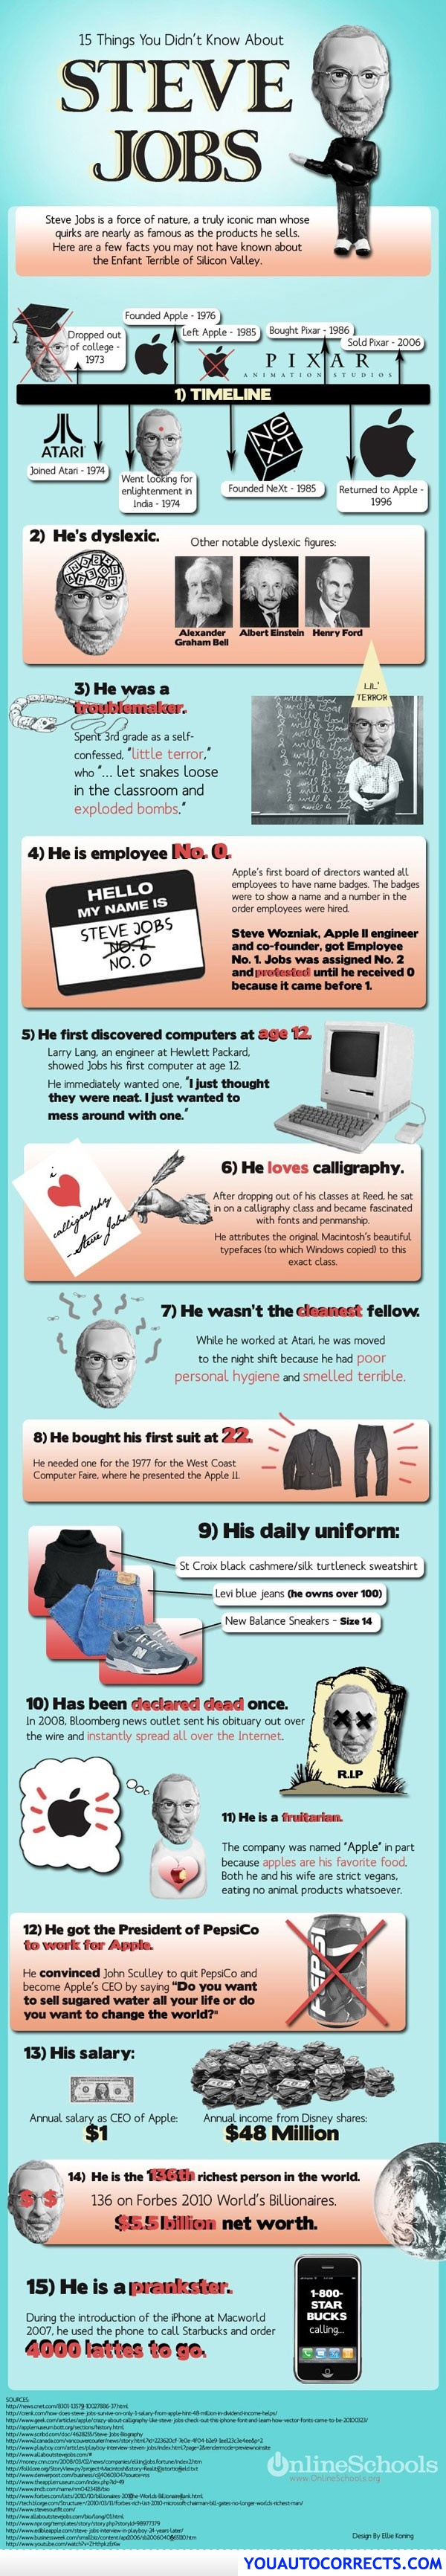 15 Things You Didnt Know About Steve Jobs